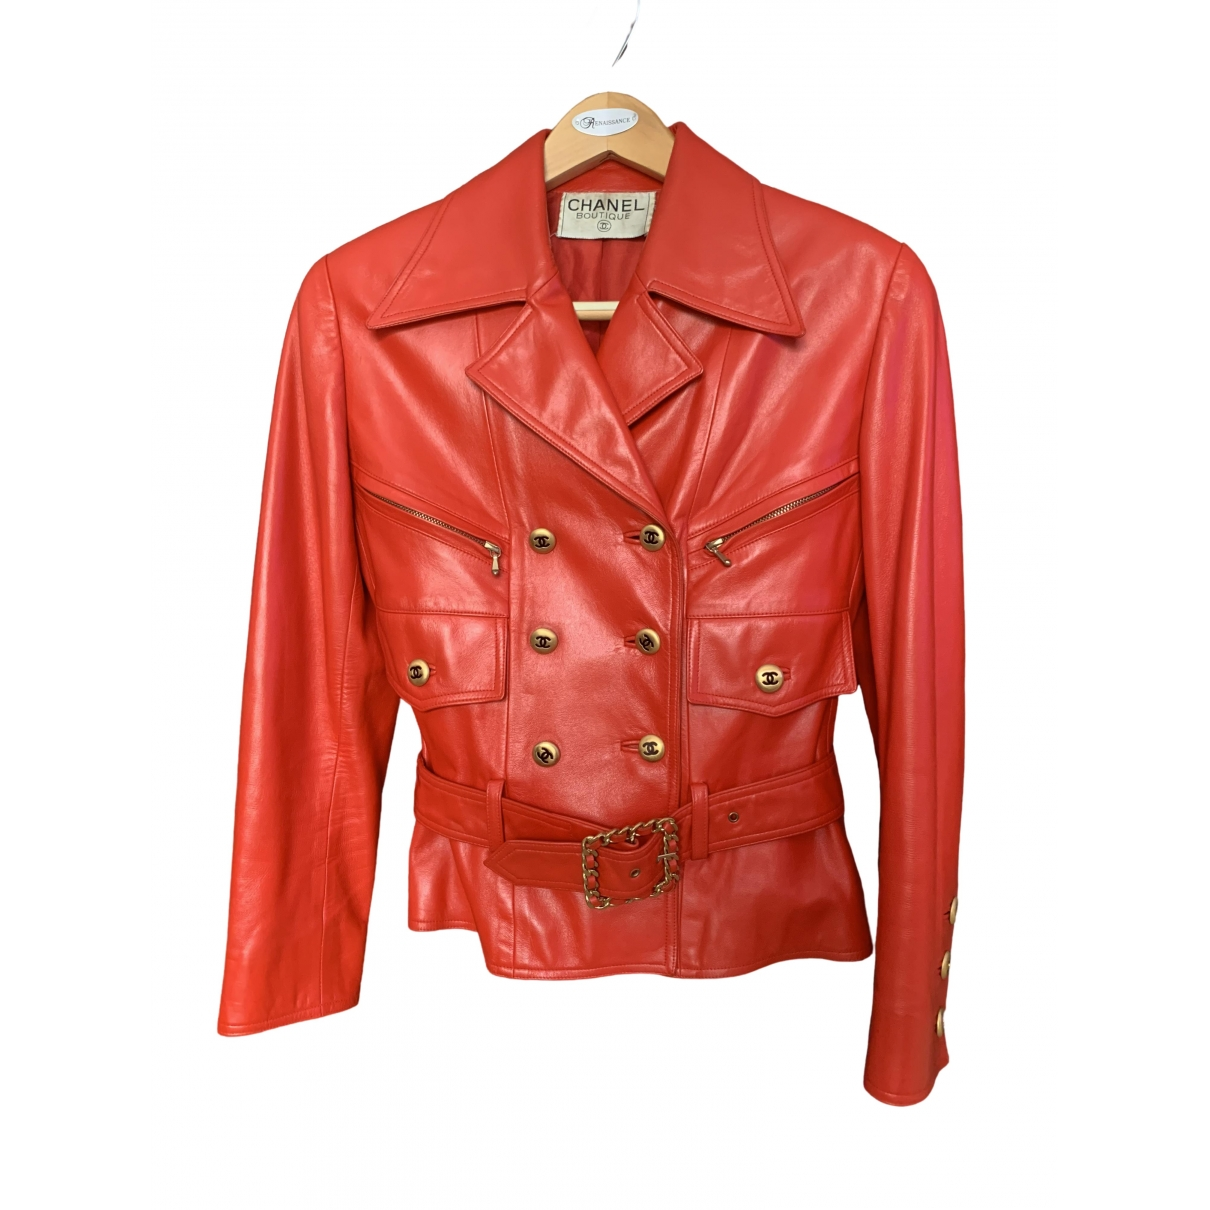 Chanel \N Red Leather jacket for Women 38 FR